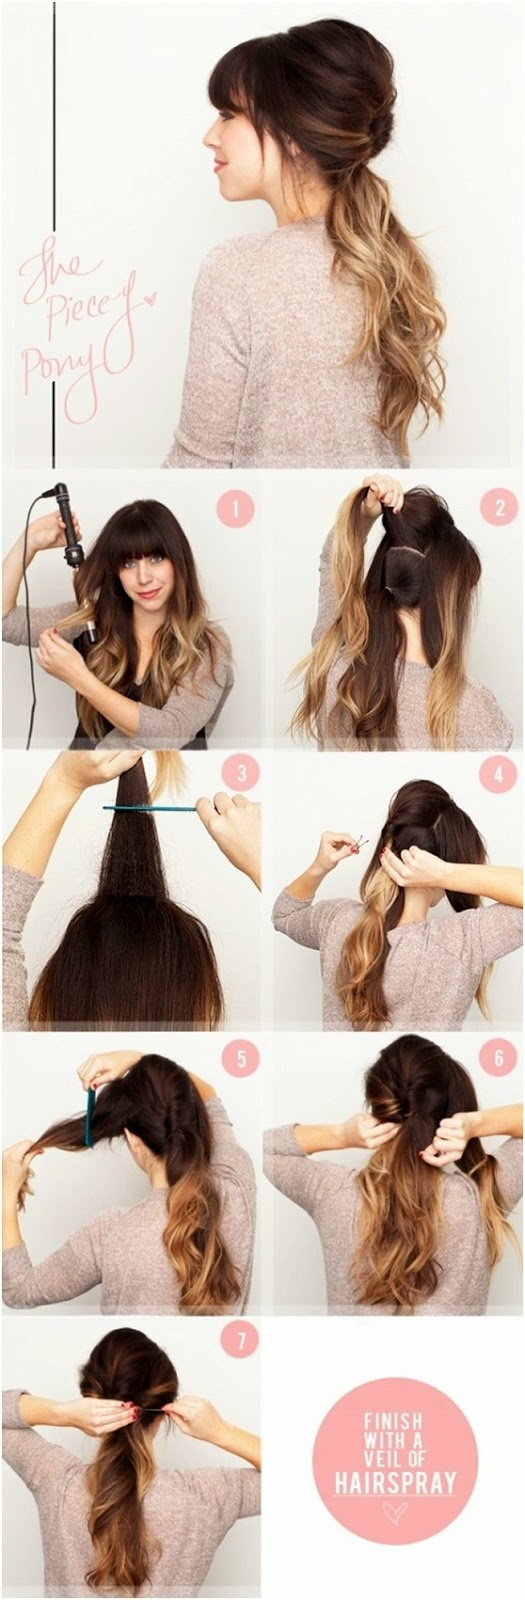 5 Cute and Easy Ponytail Hairstyles Tutorials